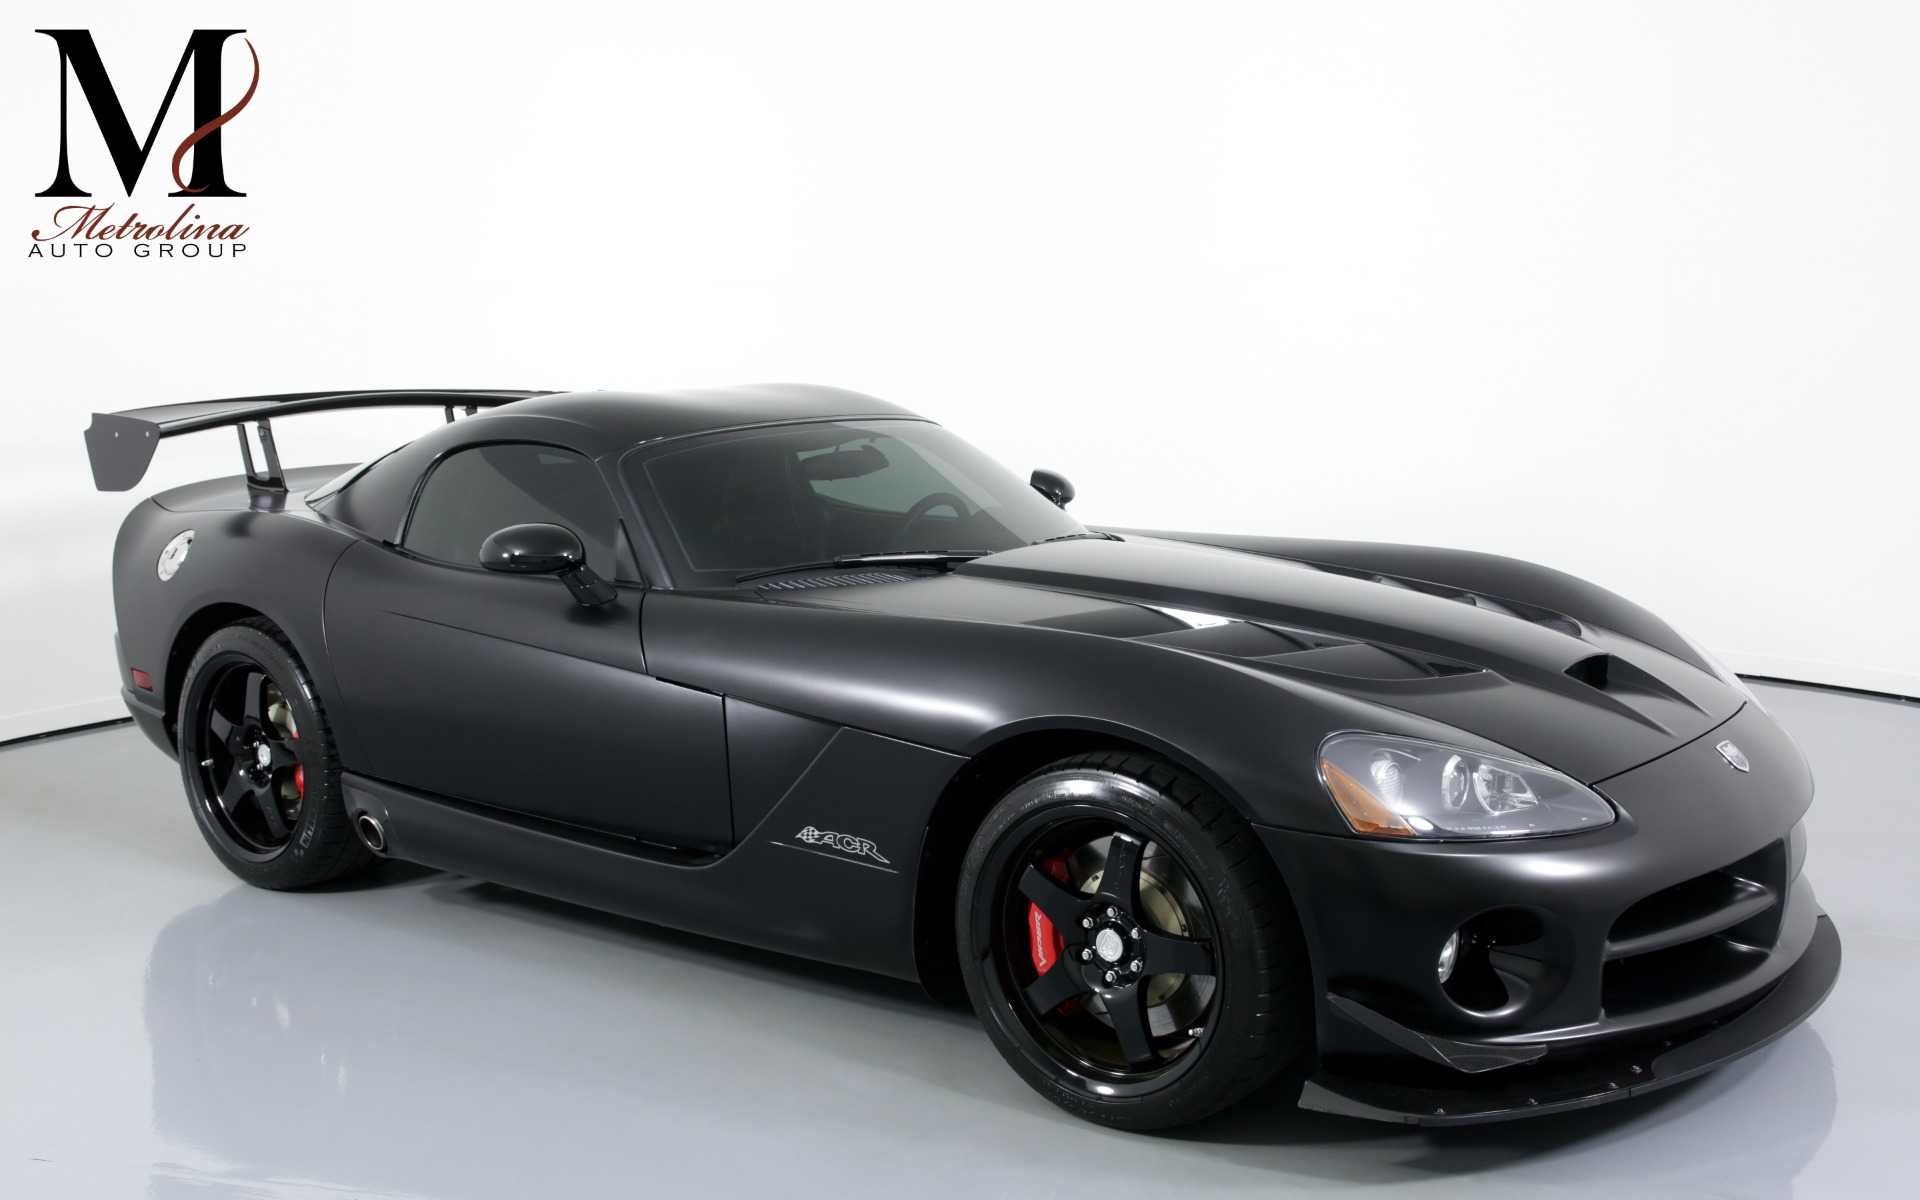 Used 2008 Dodge Viper SRT-10 for sale $77,896 at Metrolina Auto Group in Charlotte NC 28217 - 1